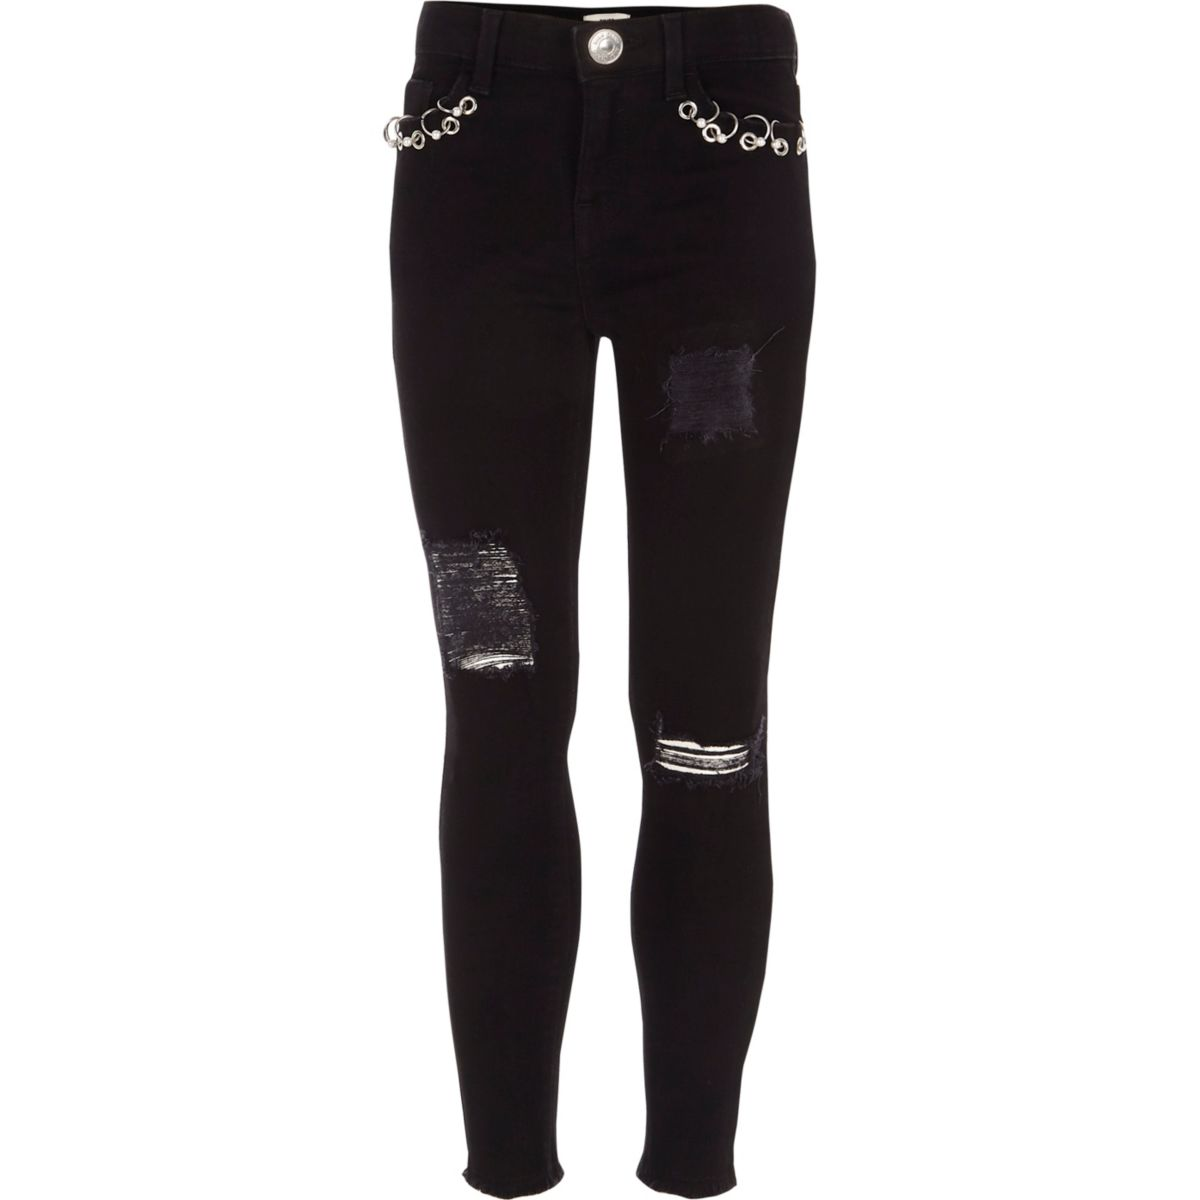 Girls black Amelie ripped super skinny jeans - Skinny Jeans - Jeans - girls